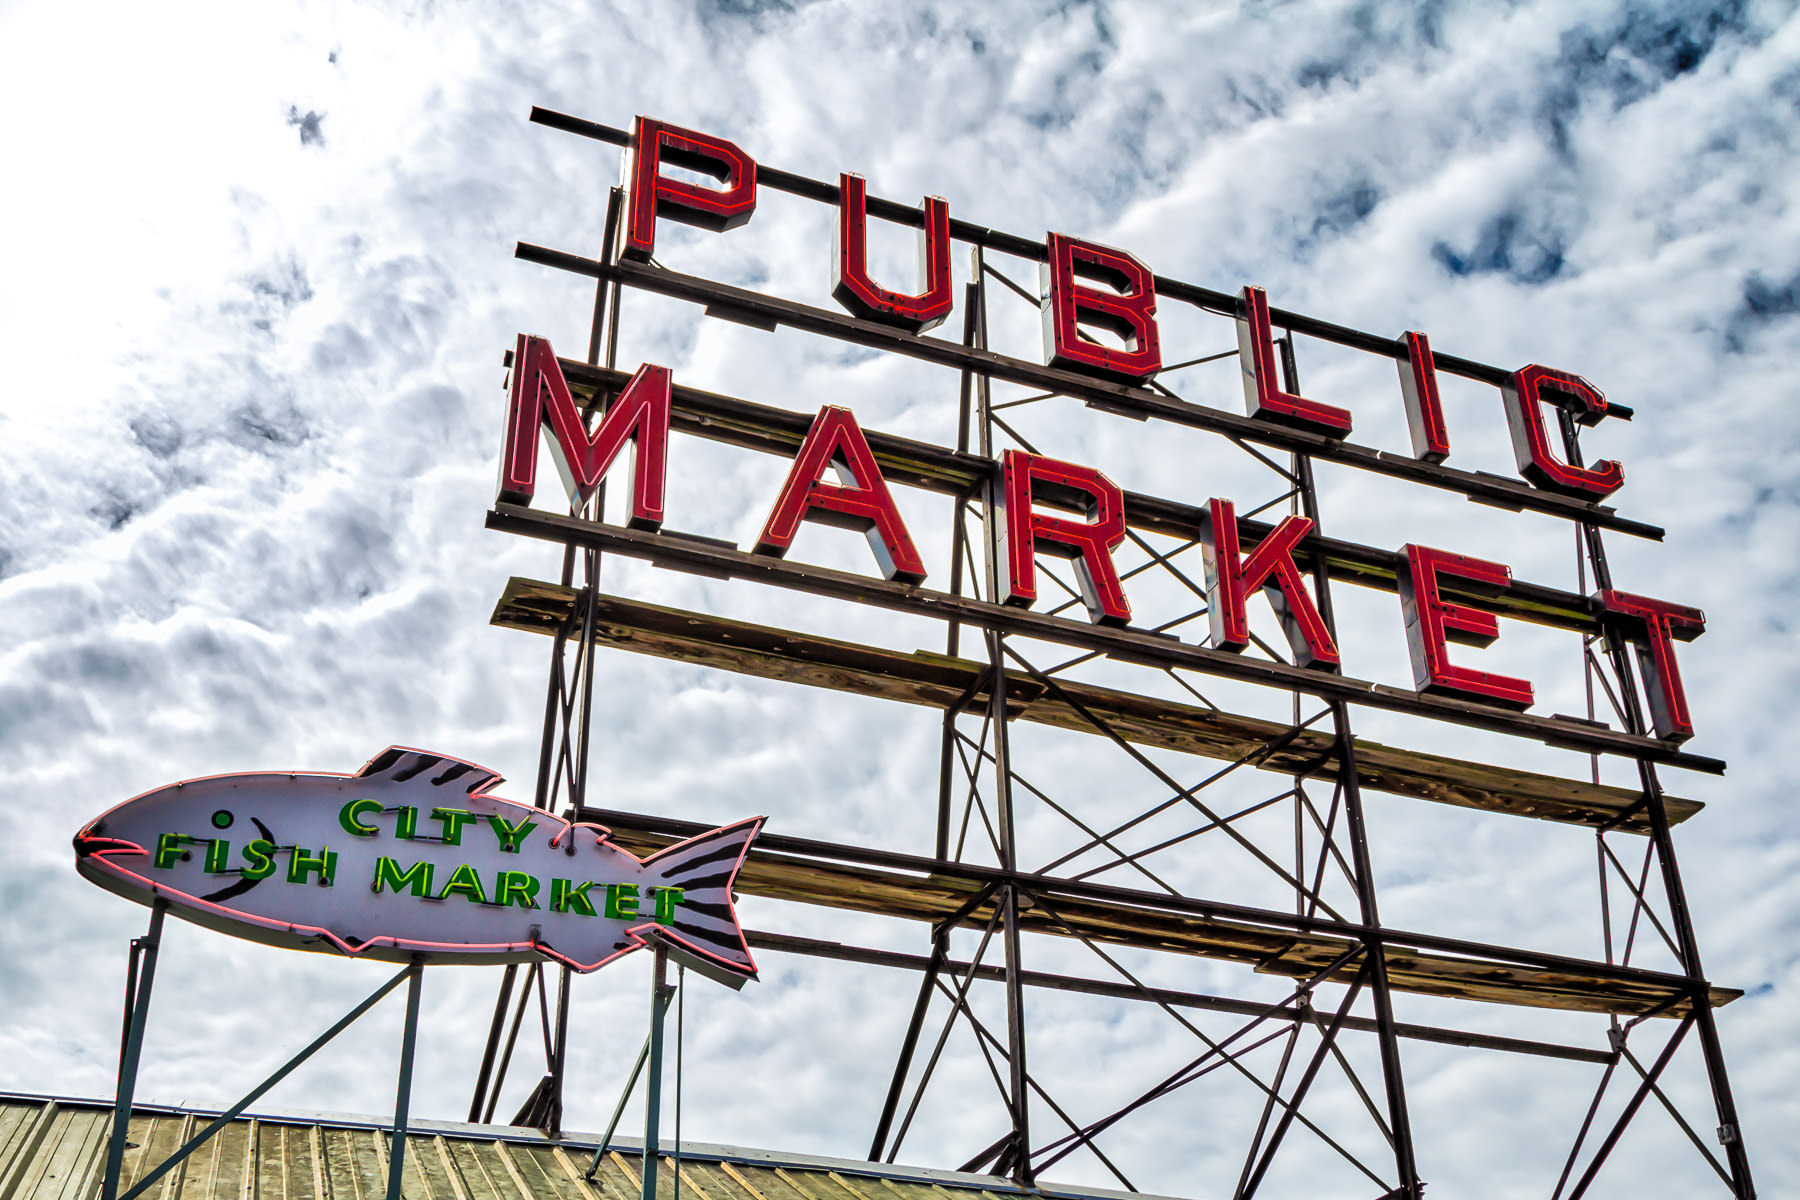 A sign atop Seattle's Pike Place Market for City Fish Market.